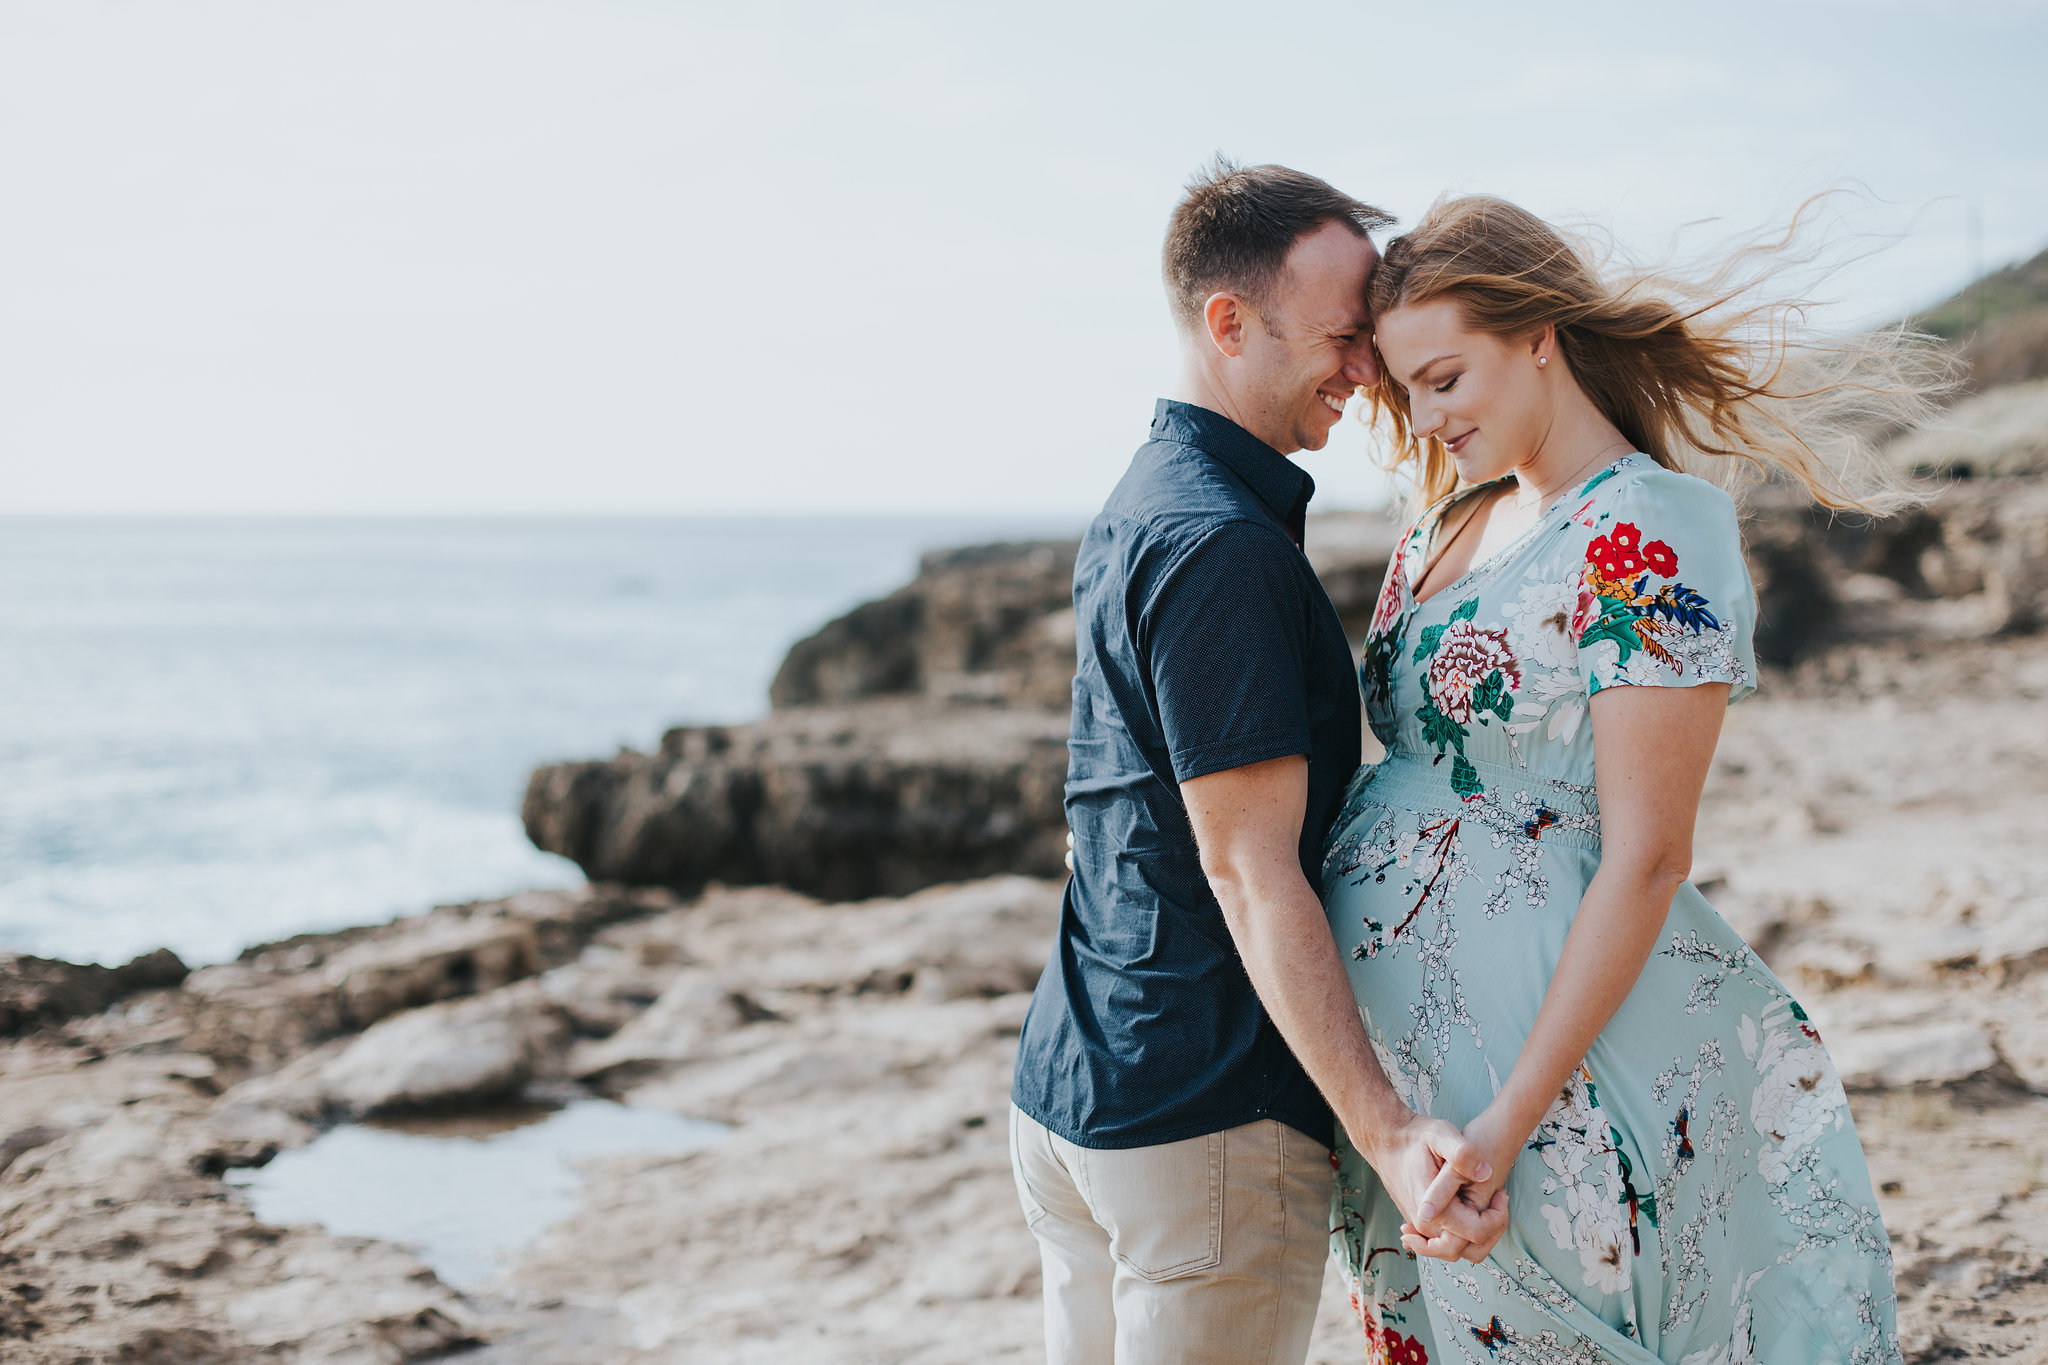 Oahu Hawaii  |   Maternity Photography Session